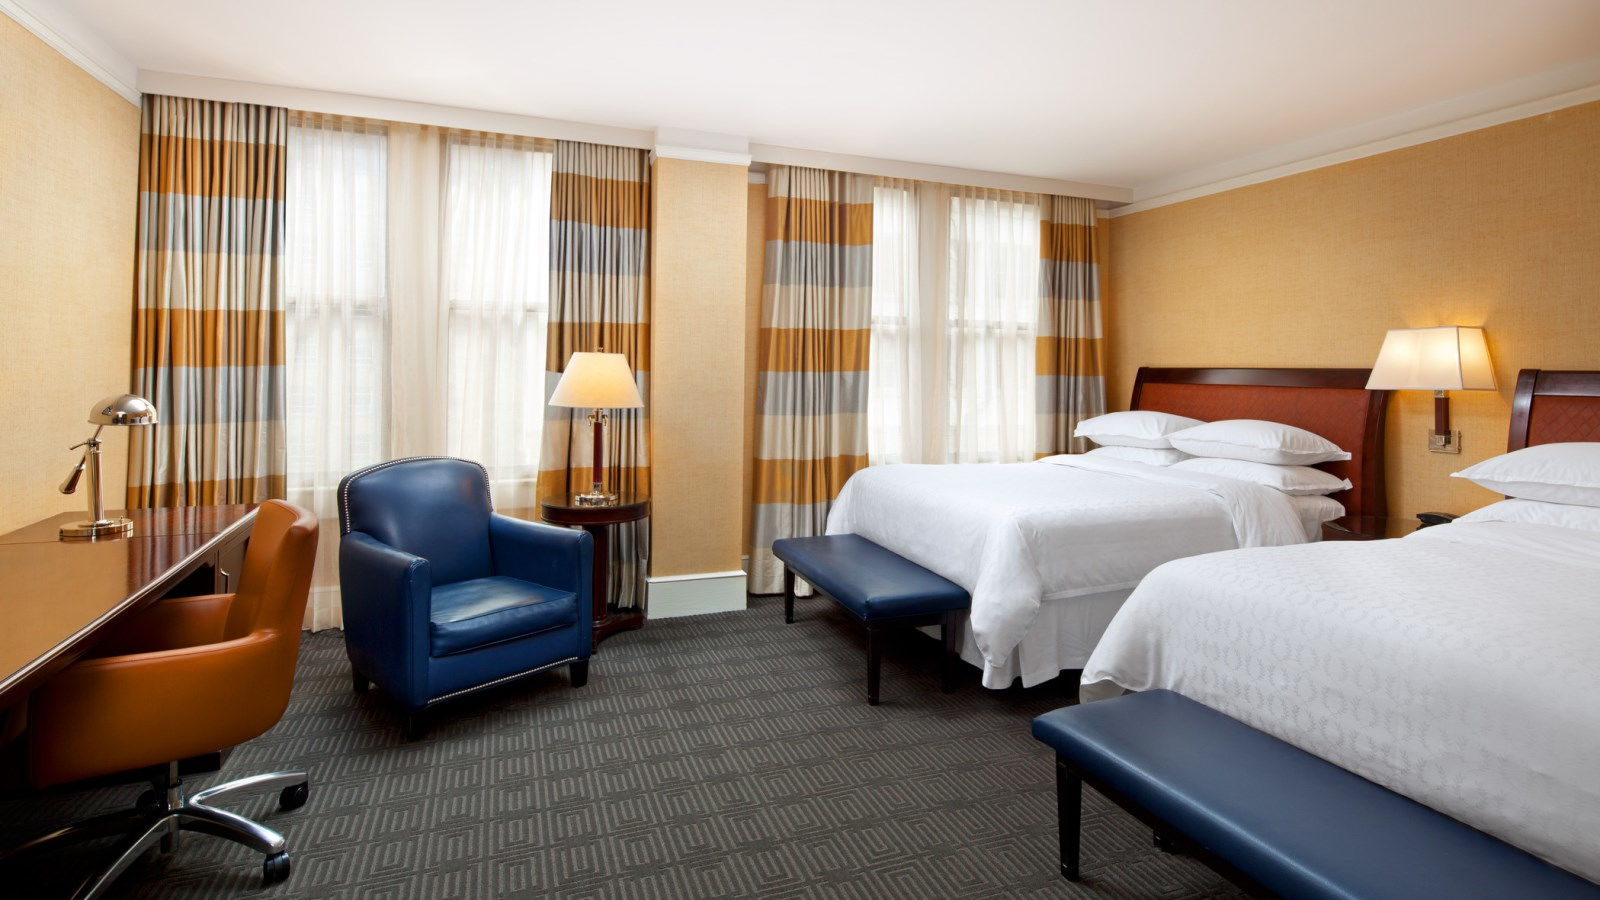 Deluxe Rooms at the Sheraton Gunter Hotel